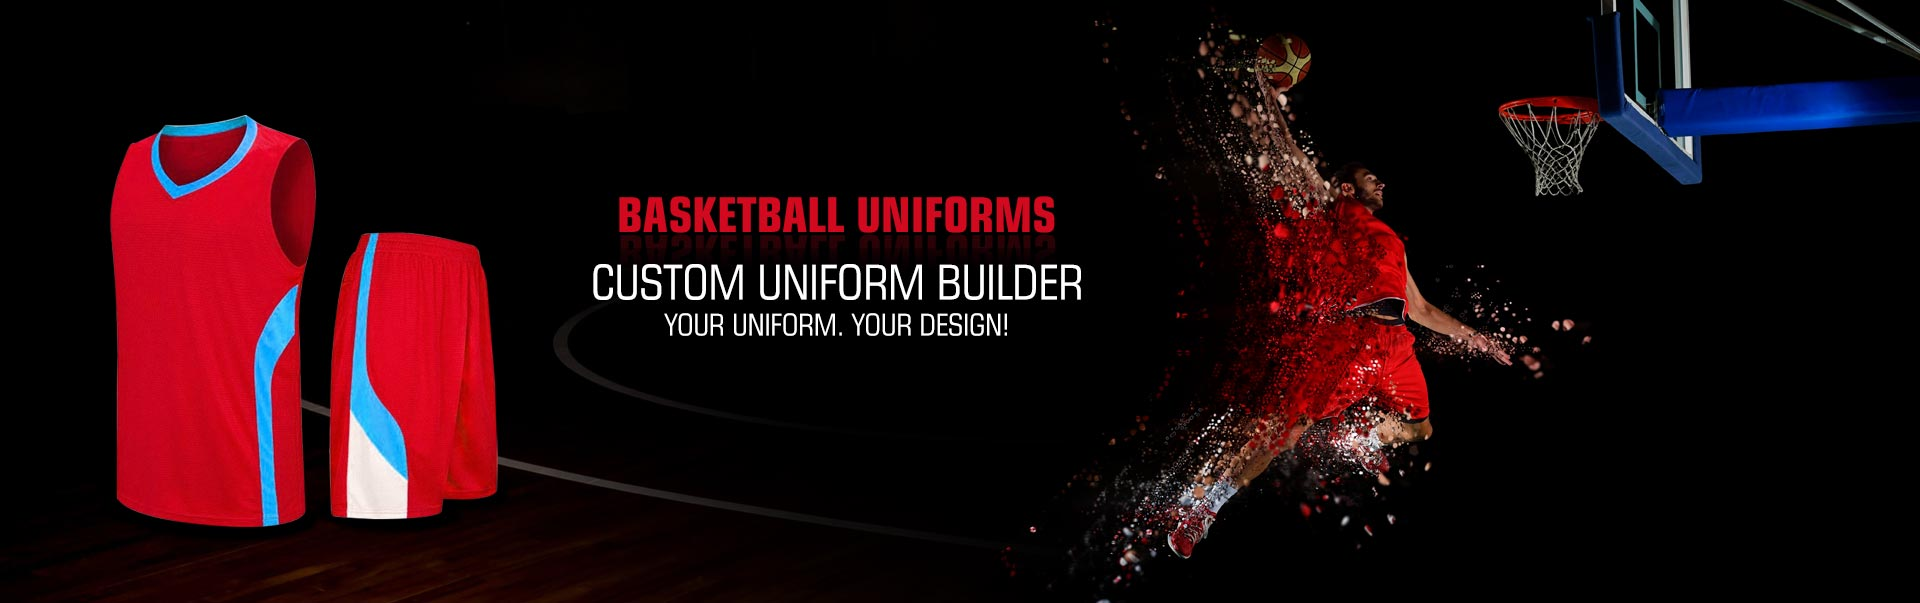 Basketball Uniforms Wholesaler, Suppliers in High Point